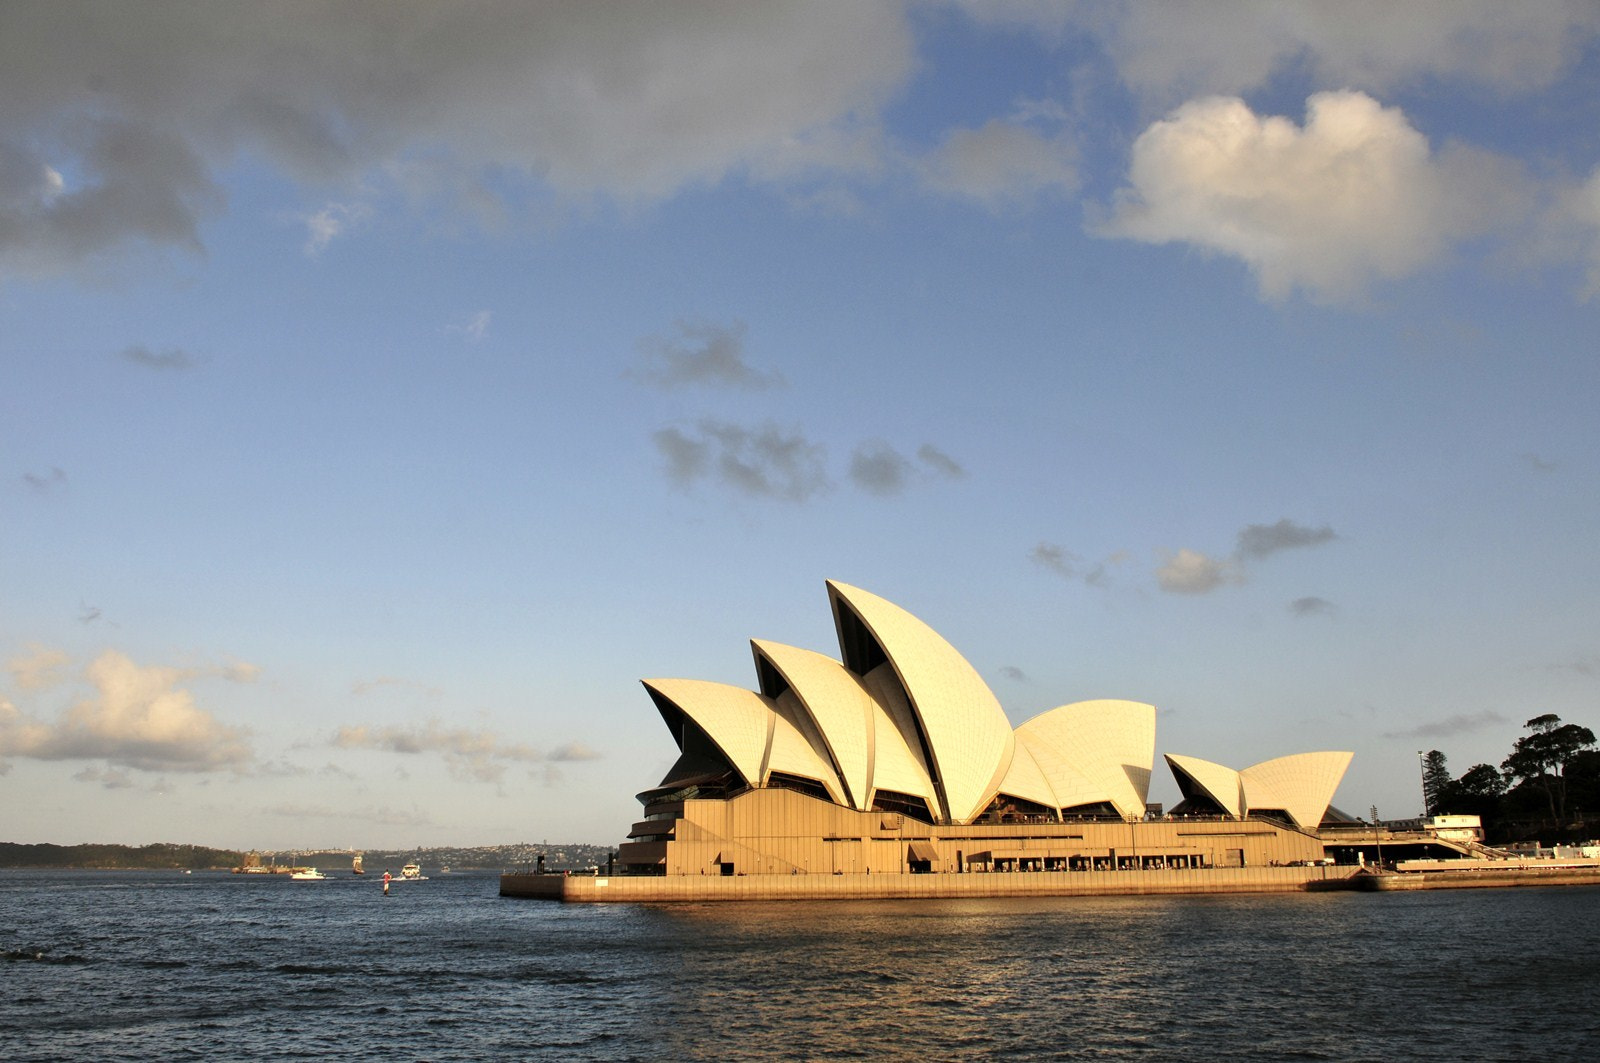 Photograph The Opera House by Esteban Cherres on 500px